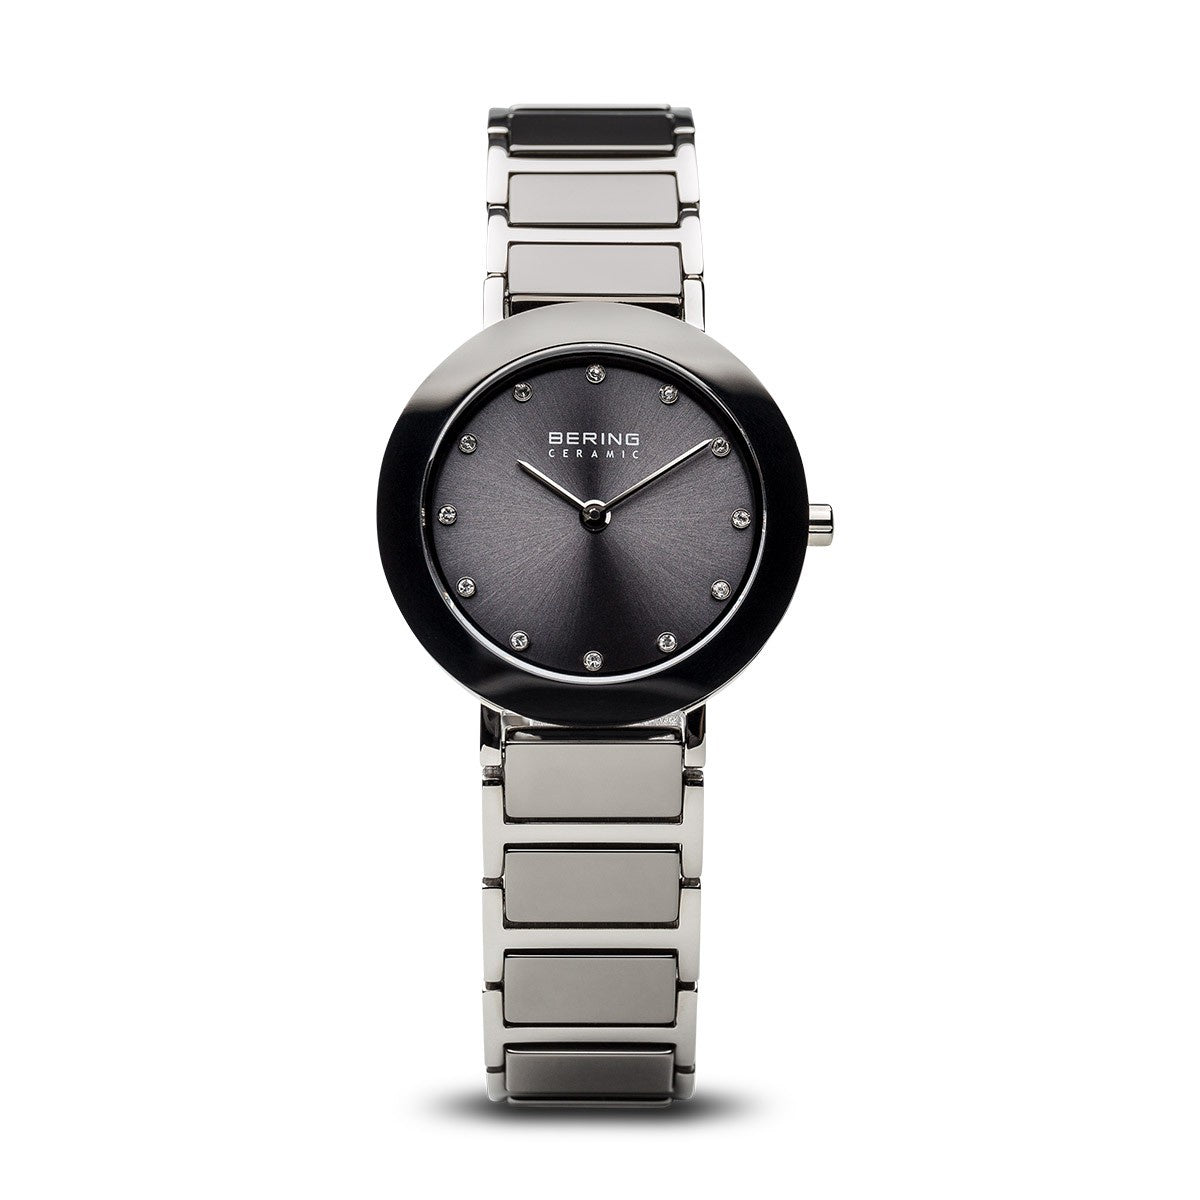 Bering Womens CeramicPolished Silver Watch 11429-783 - Robert Openshaw Fine Jewellery